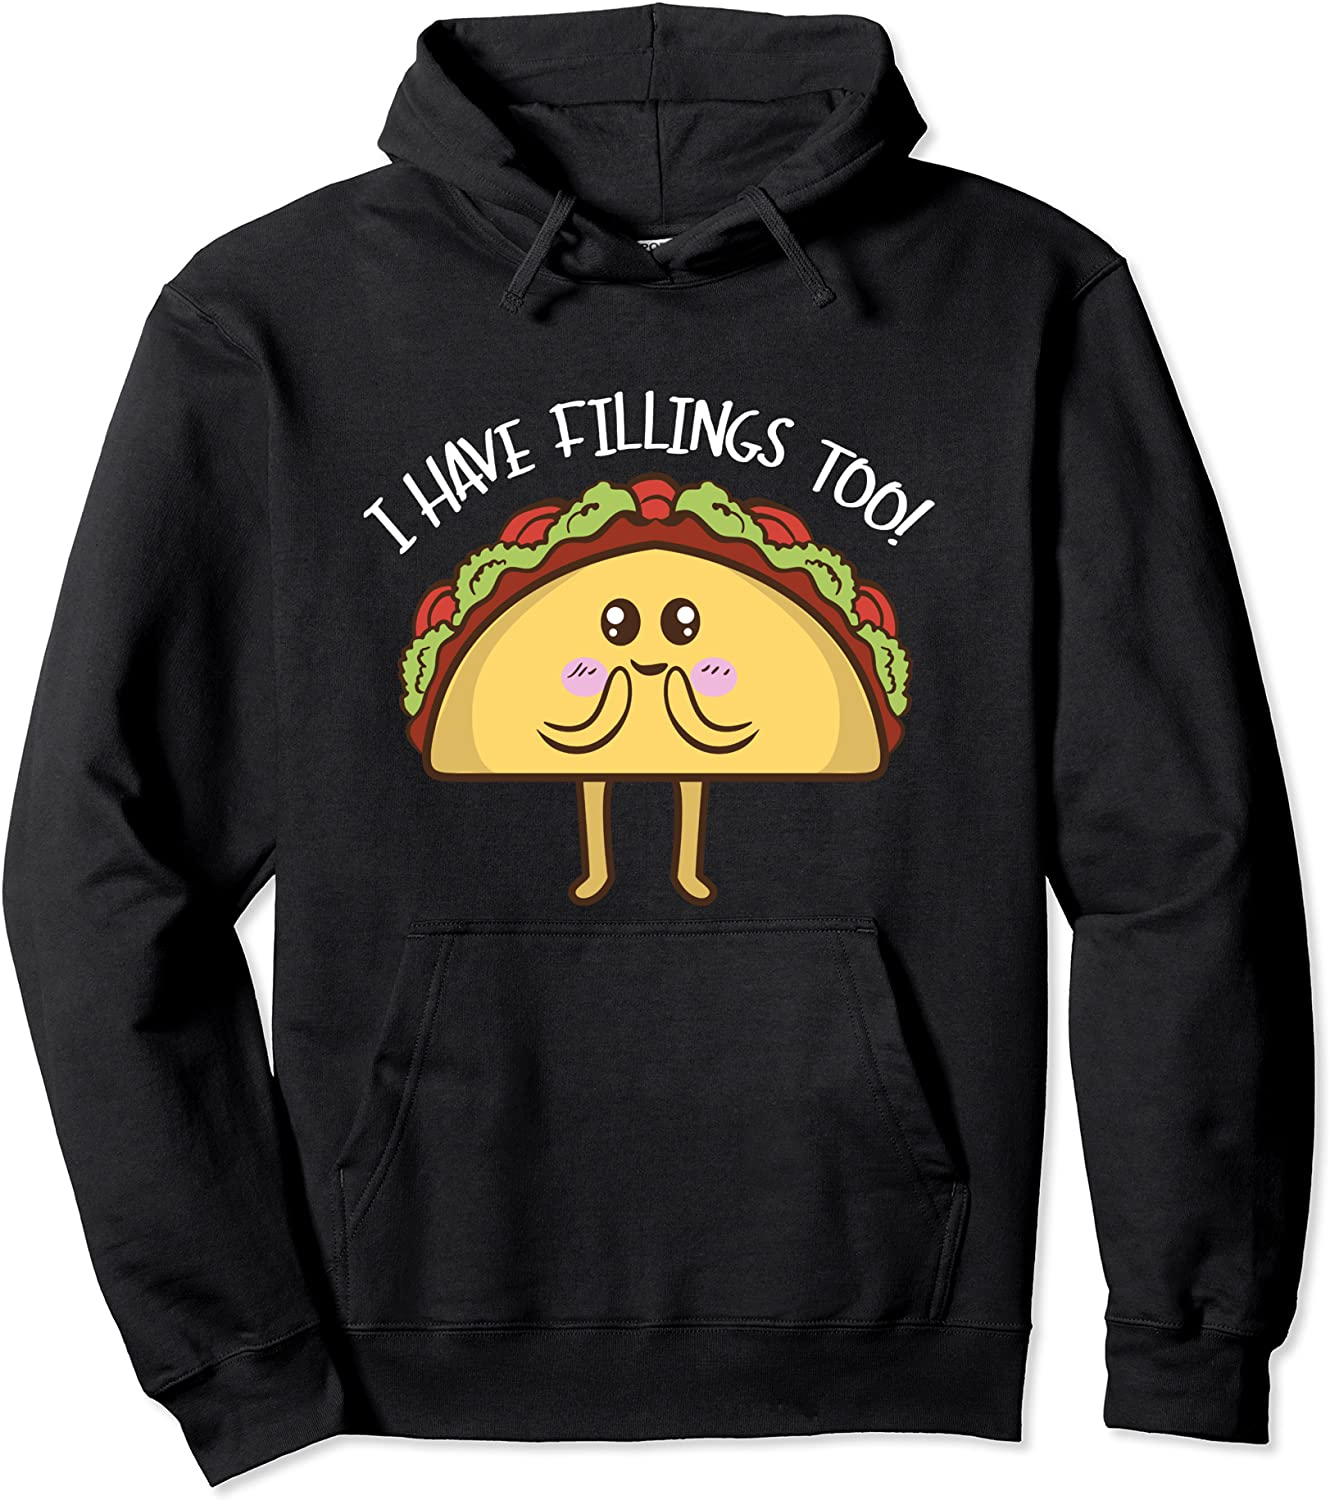 Tacos I Have OFFicial shop Fillings Low price Too Funny Gift Pullover Food Mexican Taco